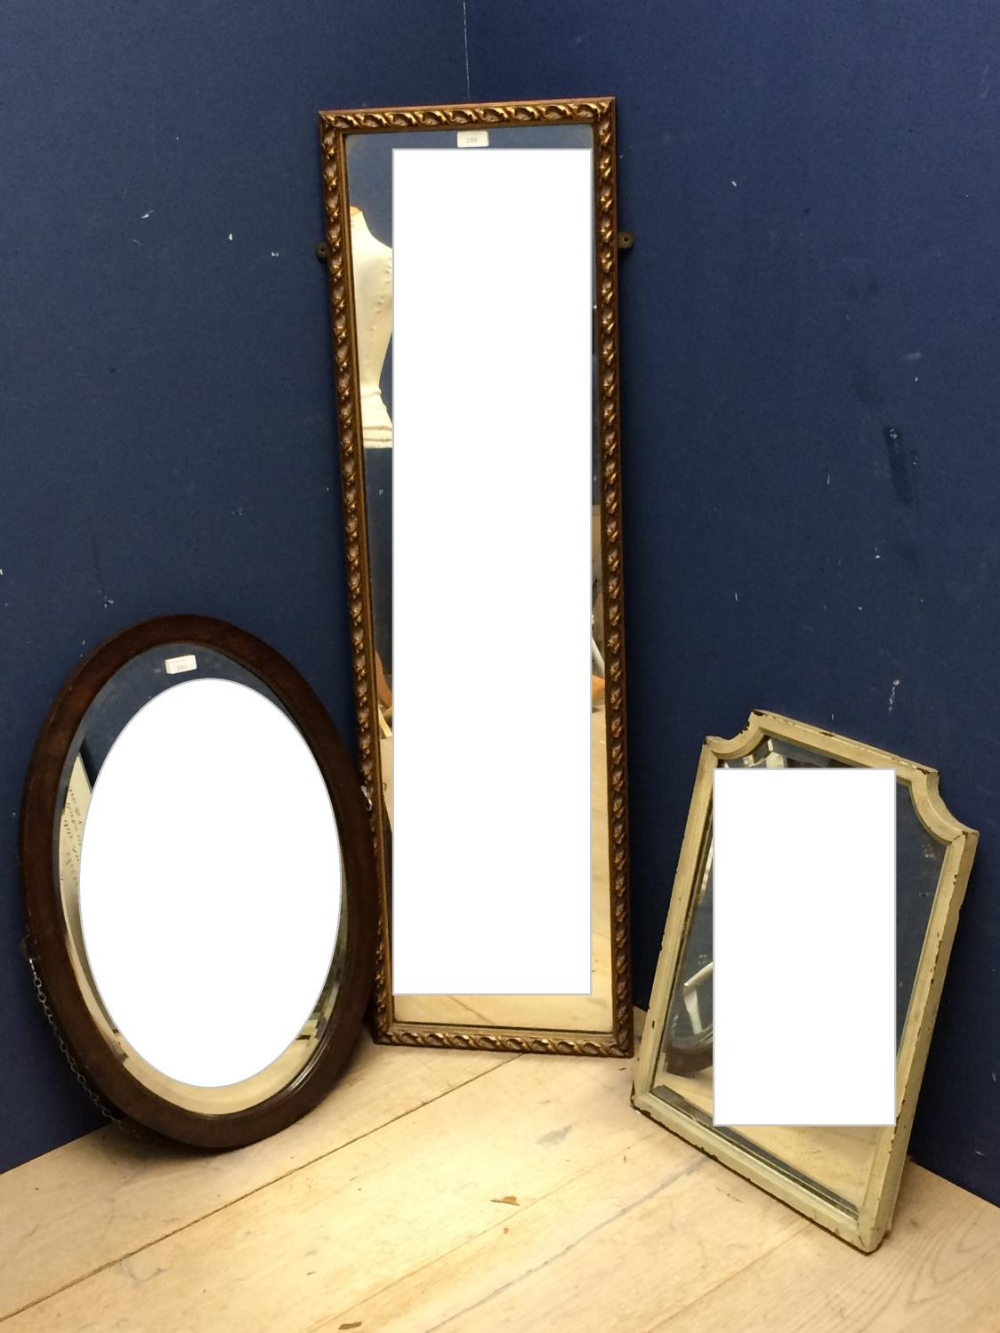 Lot 4 - General Clearance Lots: Oak framed oval mirror with bevelled glass 67x47, gilt framed mirror